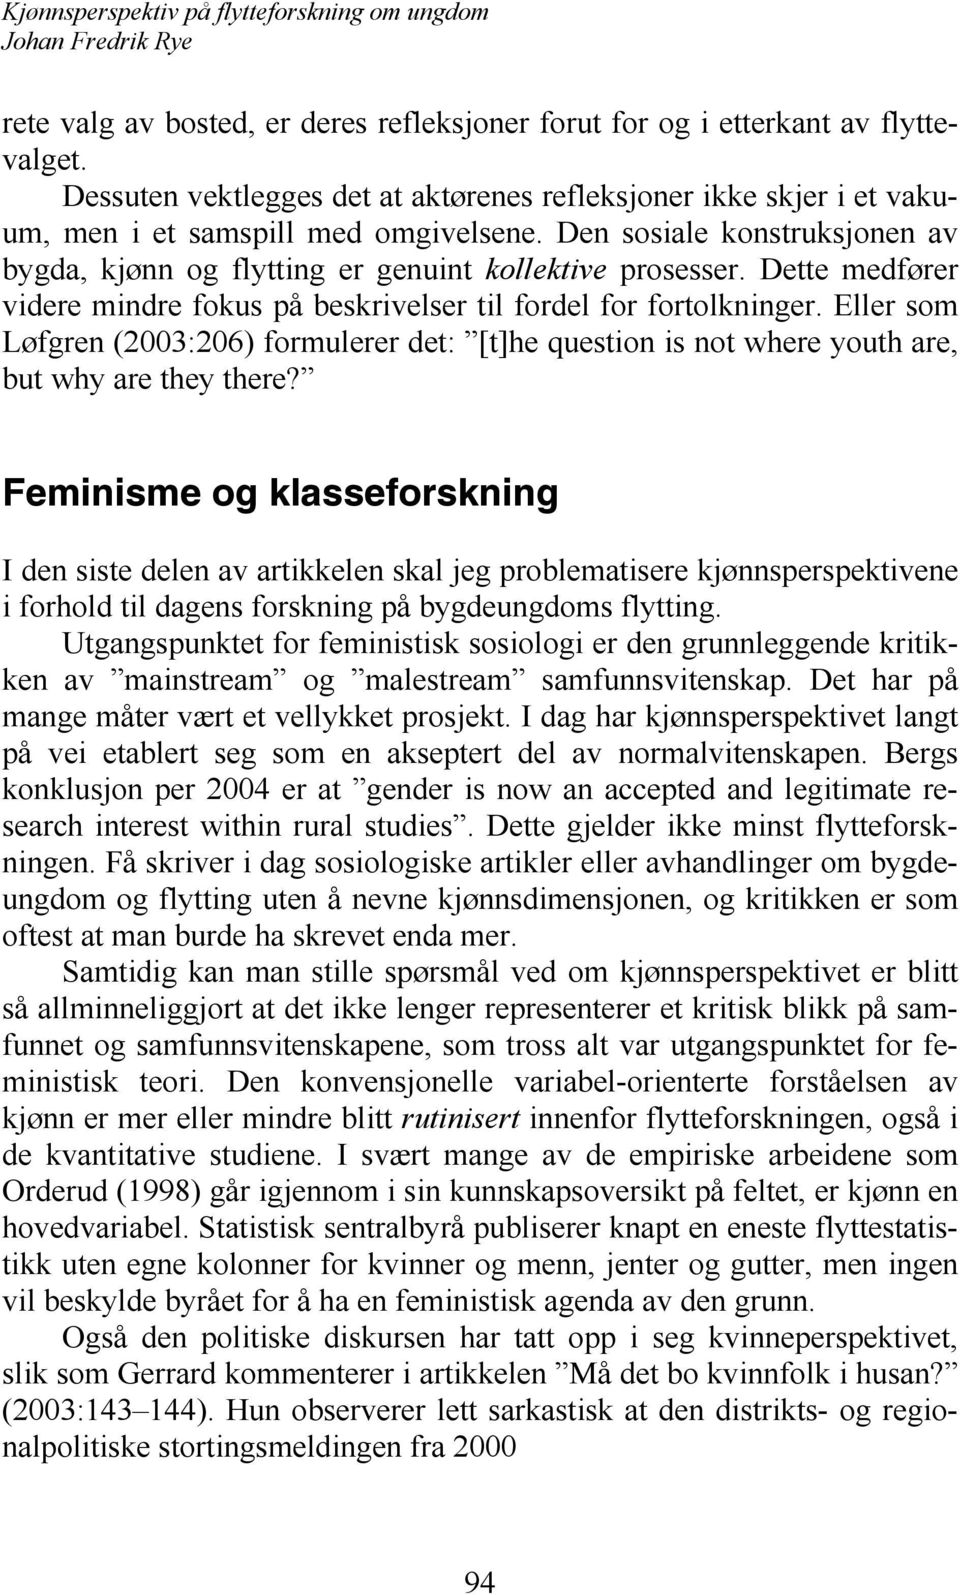 Eller som Løfgren (2003:206) formulerer det: [t]he question is not where youth are, but why are they there?